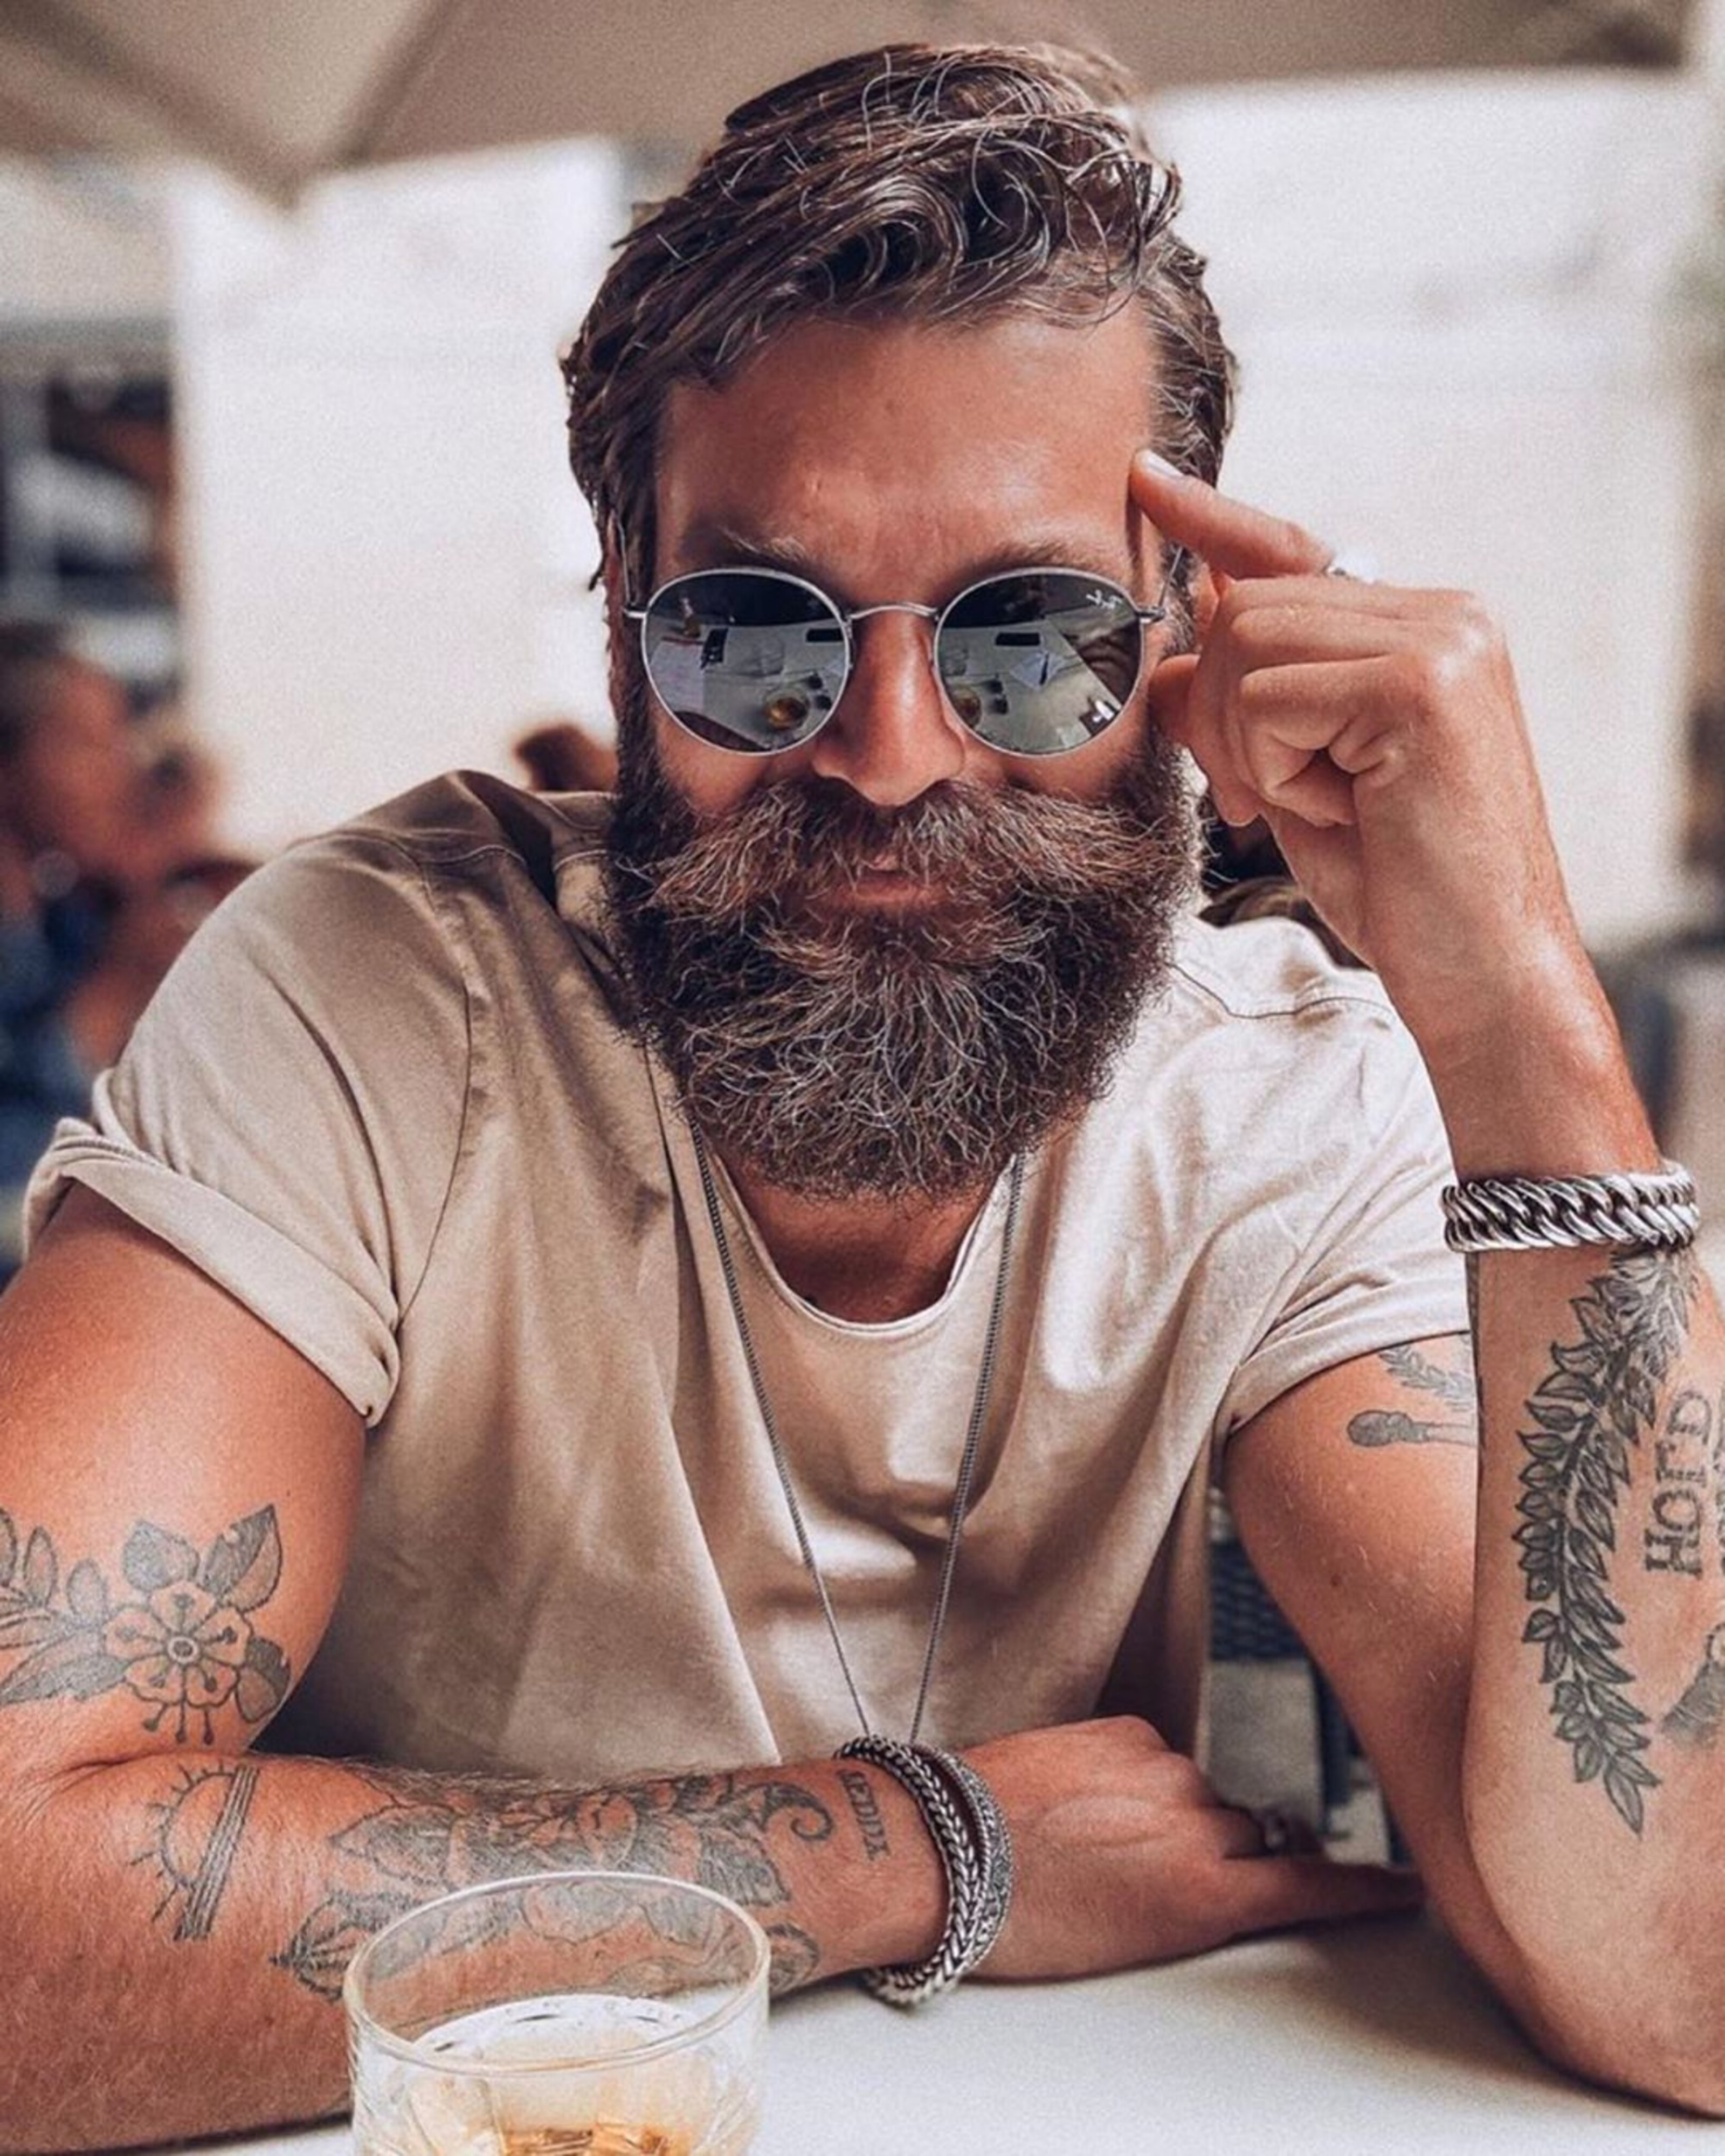 A long bearded style for men with a round face.